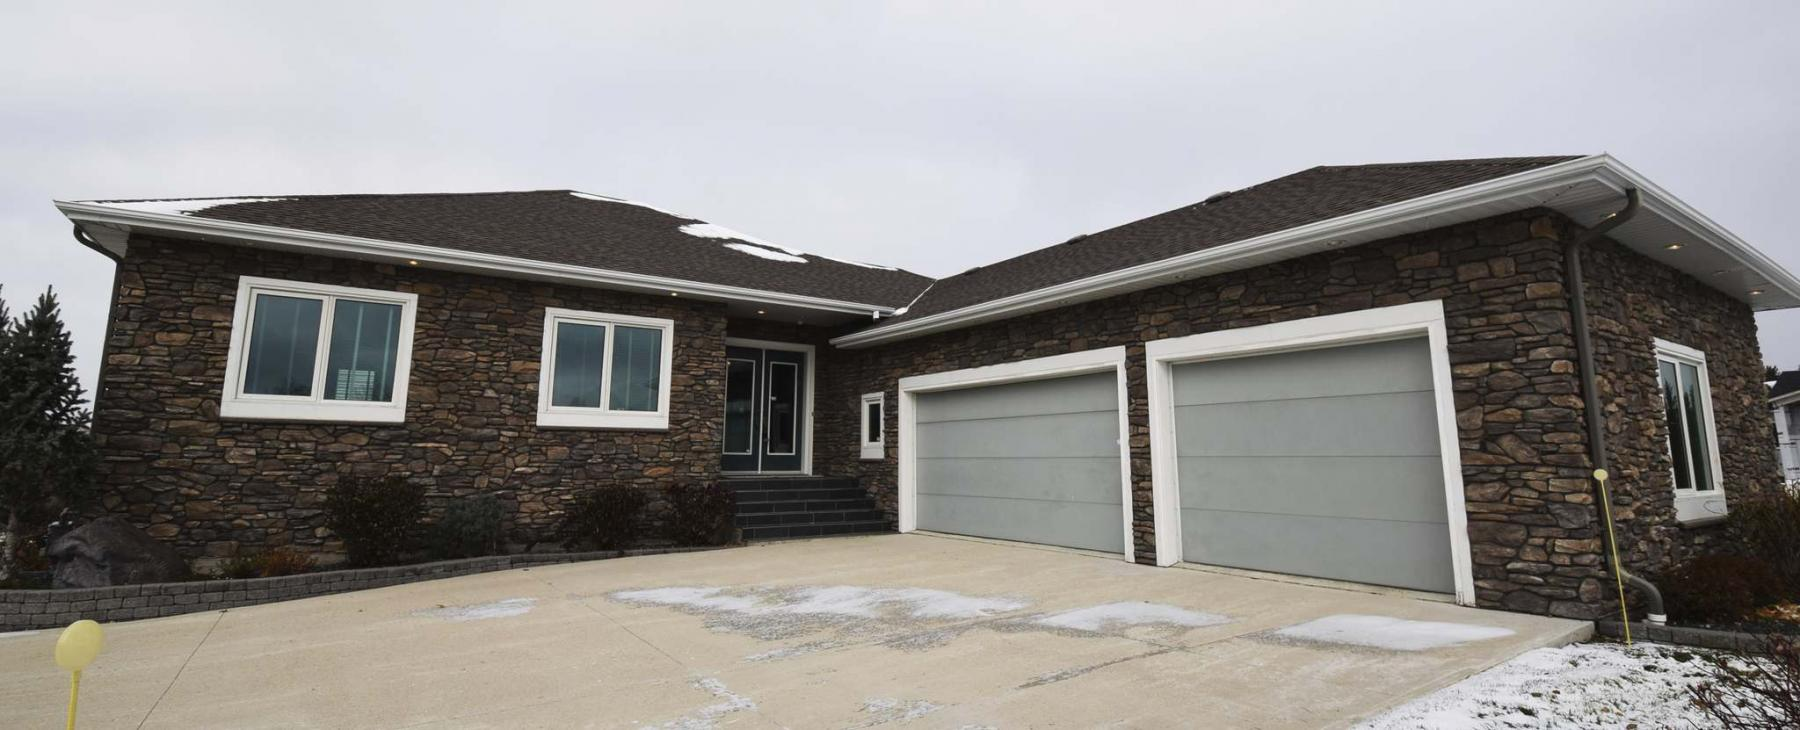 <p>Photos by Todd Lewys / Winnipeg Free Press</p><p>This huge bungalow was custom-built in 2004 and offers more than 4,300 square feet of living space.</p>